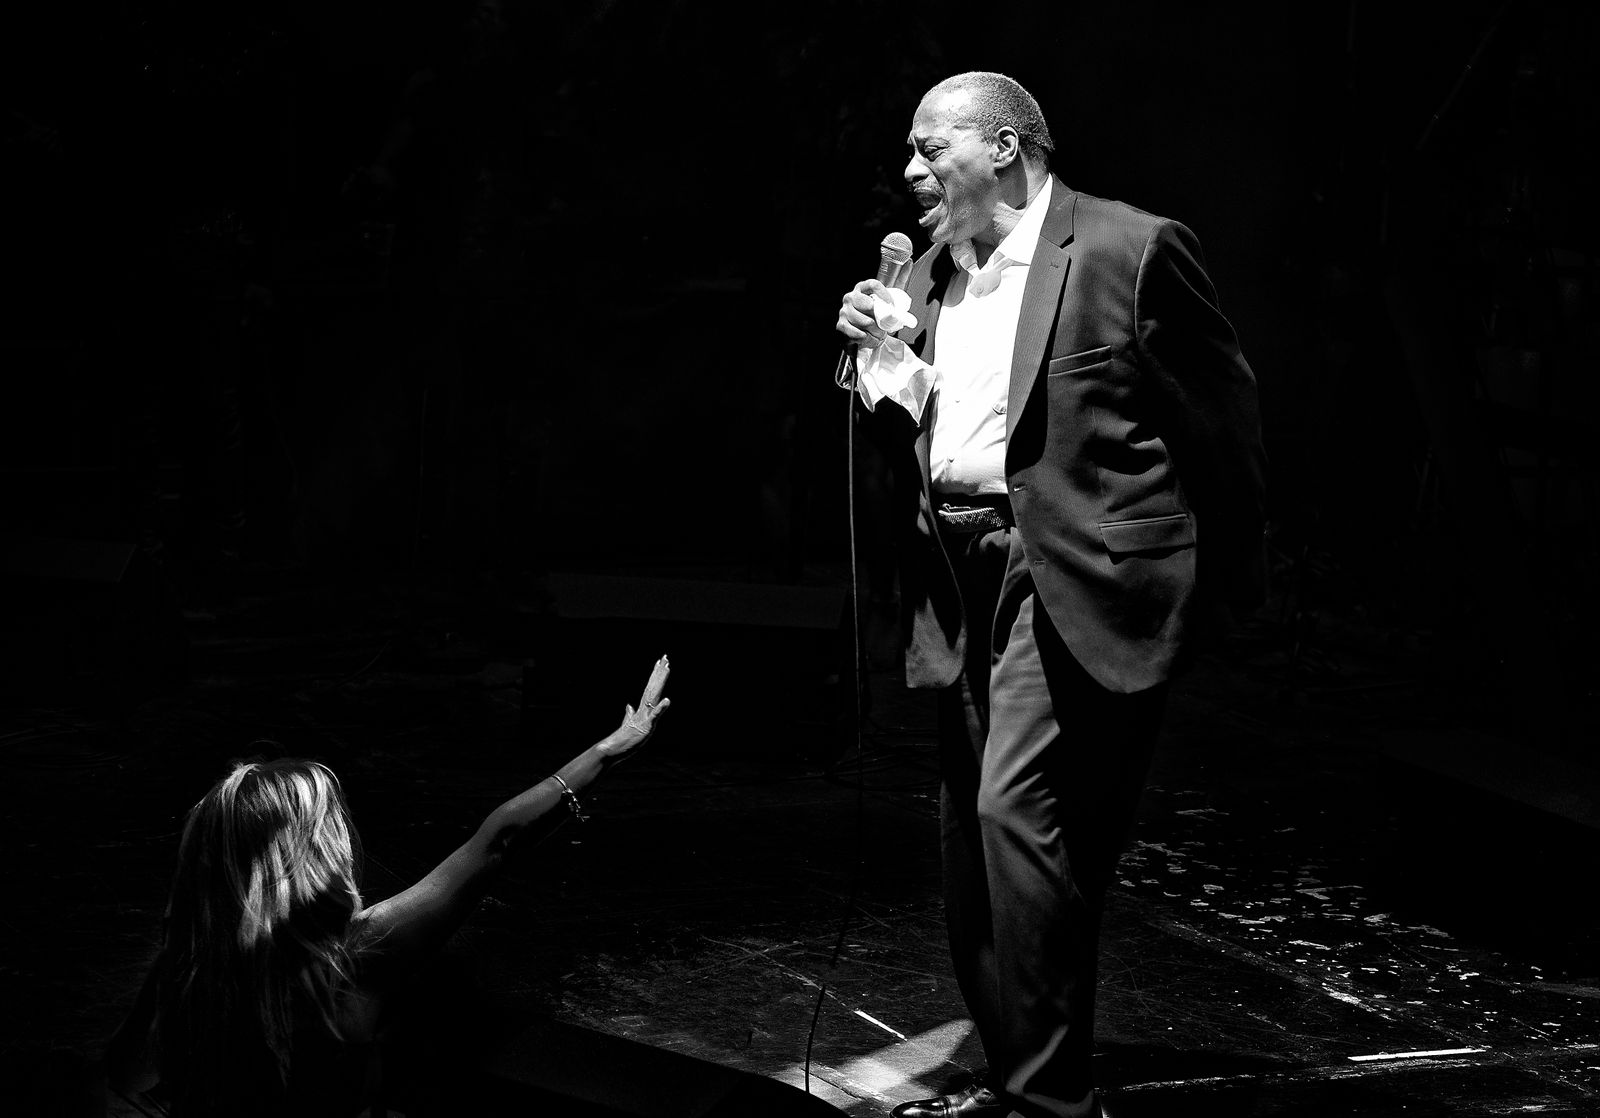 Alexander O'Neal on stage at The Olympia, Liverpool